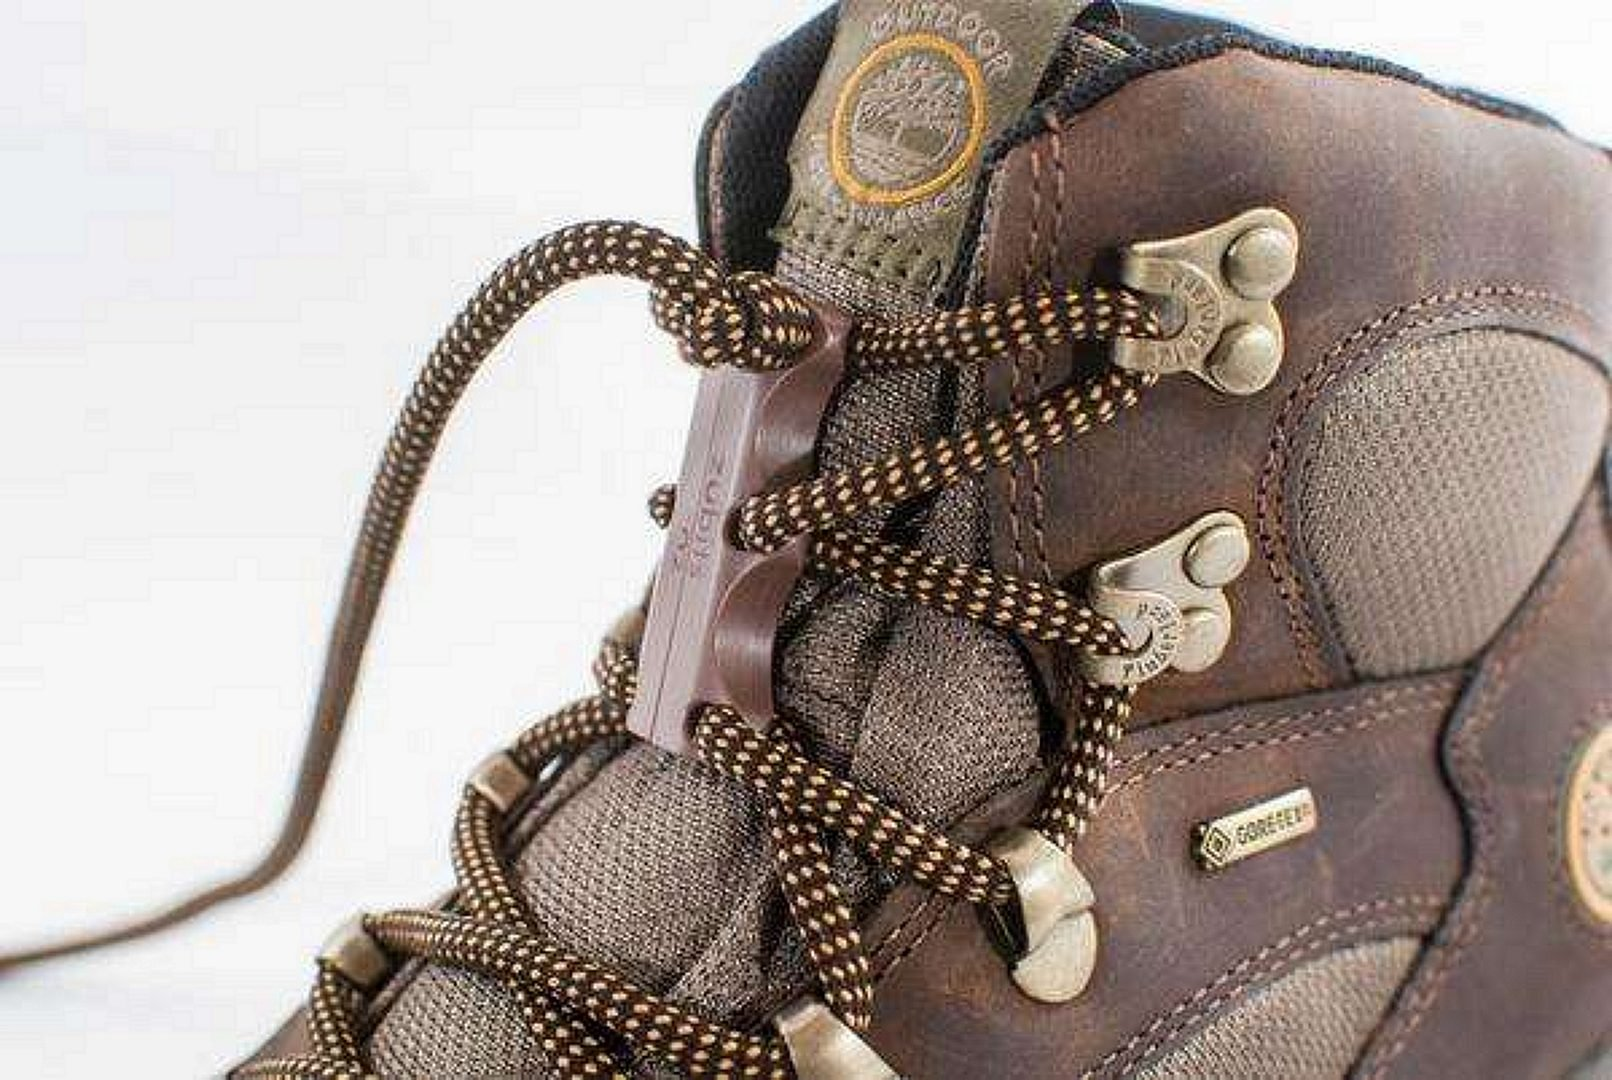 Laces on a hiking boot close up view